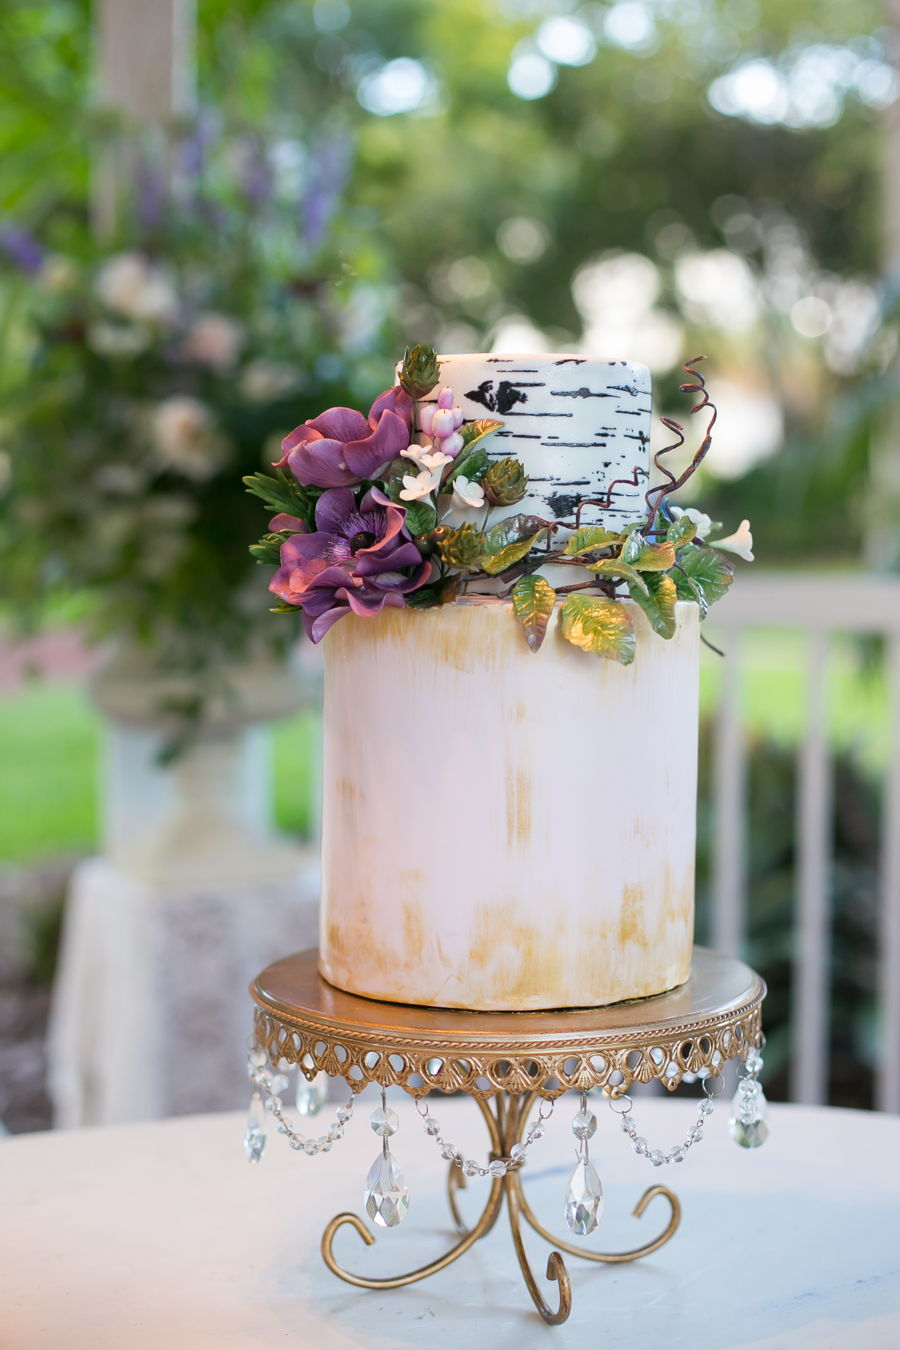 Rustic Chic Wedding on Cake Central